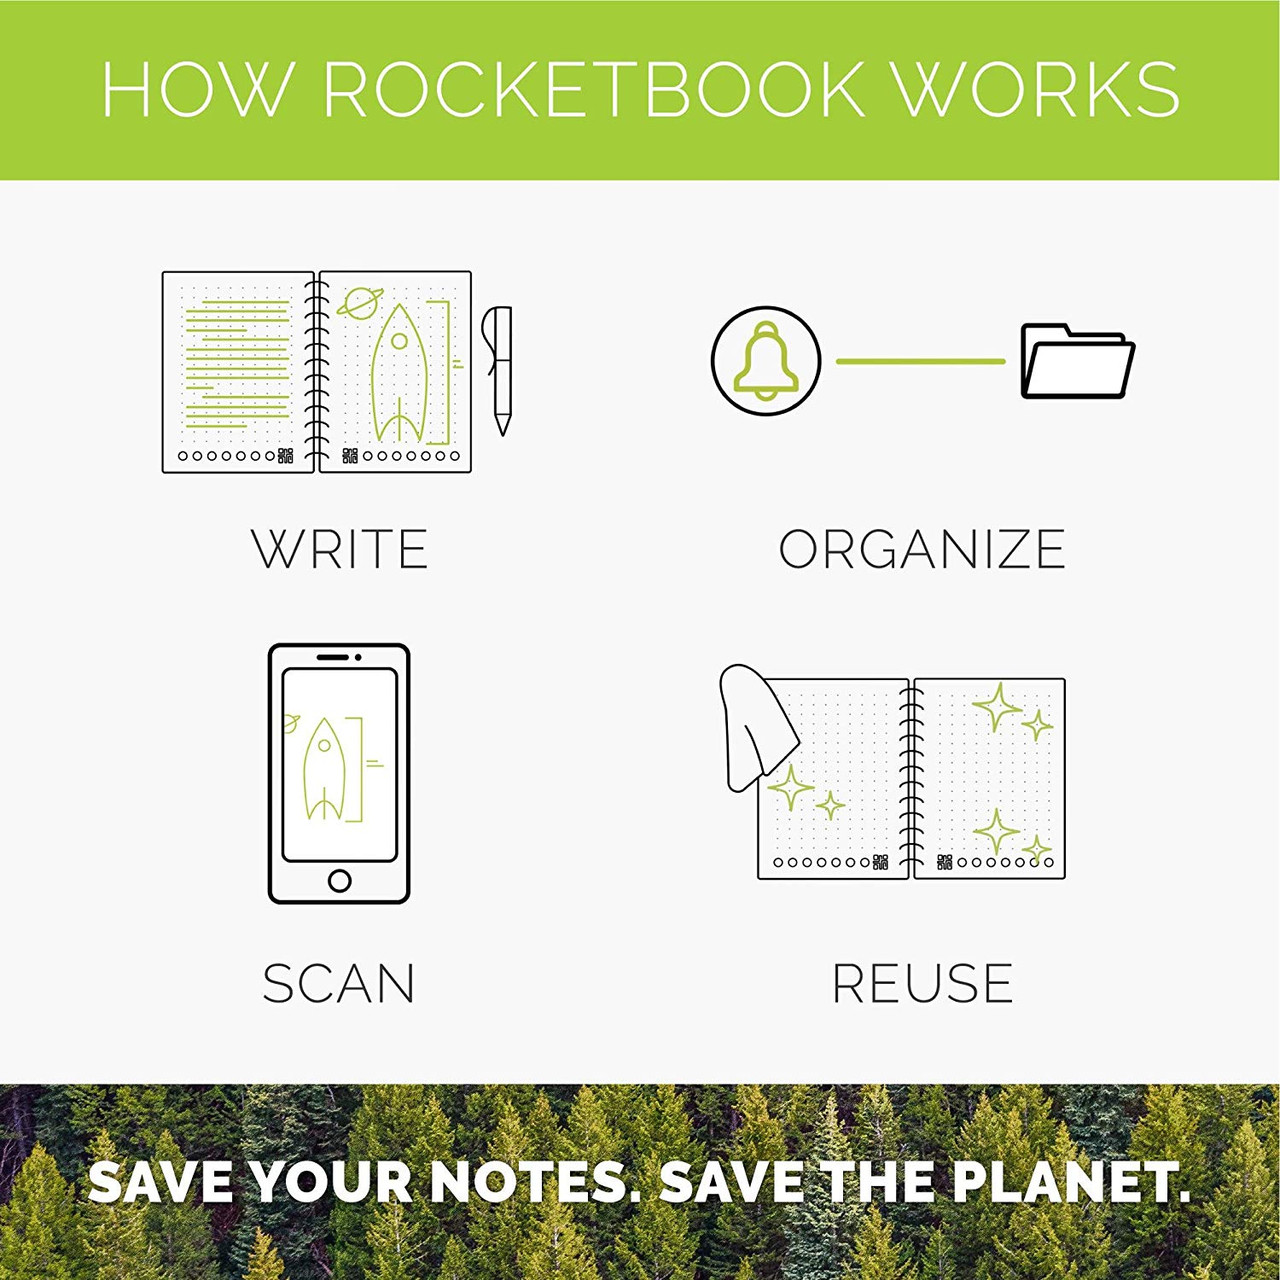 Rocketbook EVR-L-K-CKG Everlast Smart Reusable Notebook with Pen and Microfiber Cloth, Letter Size, Terrestrial Green